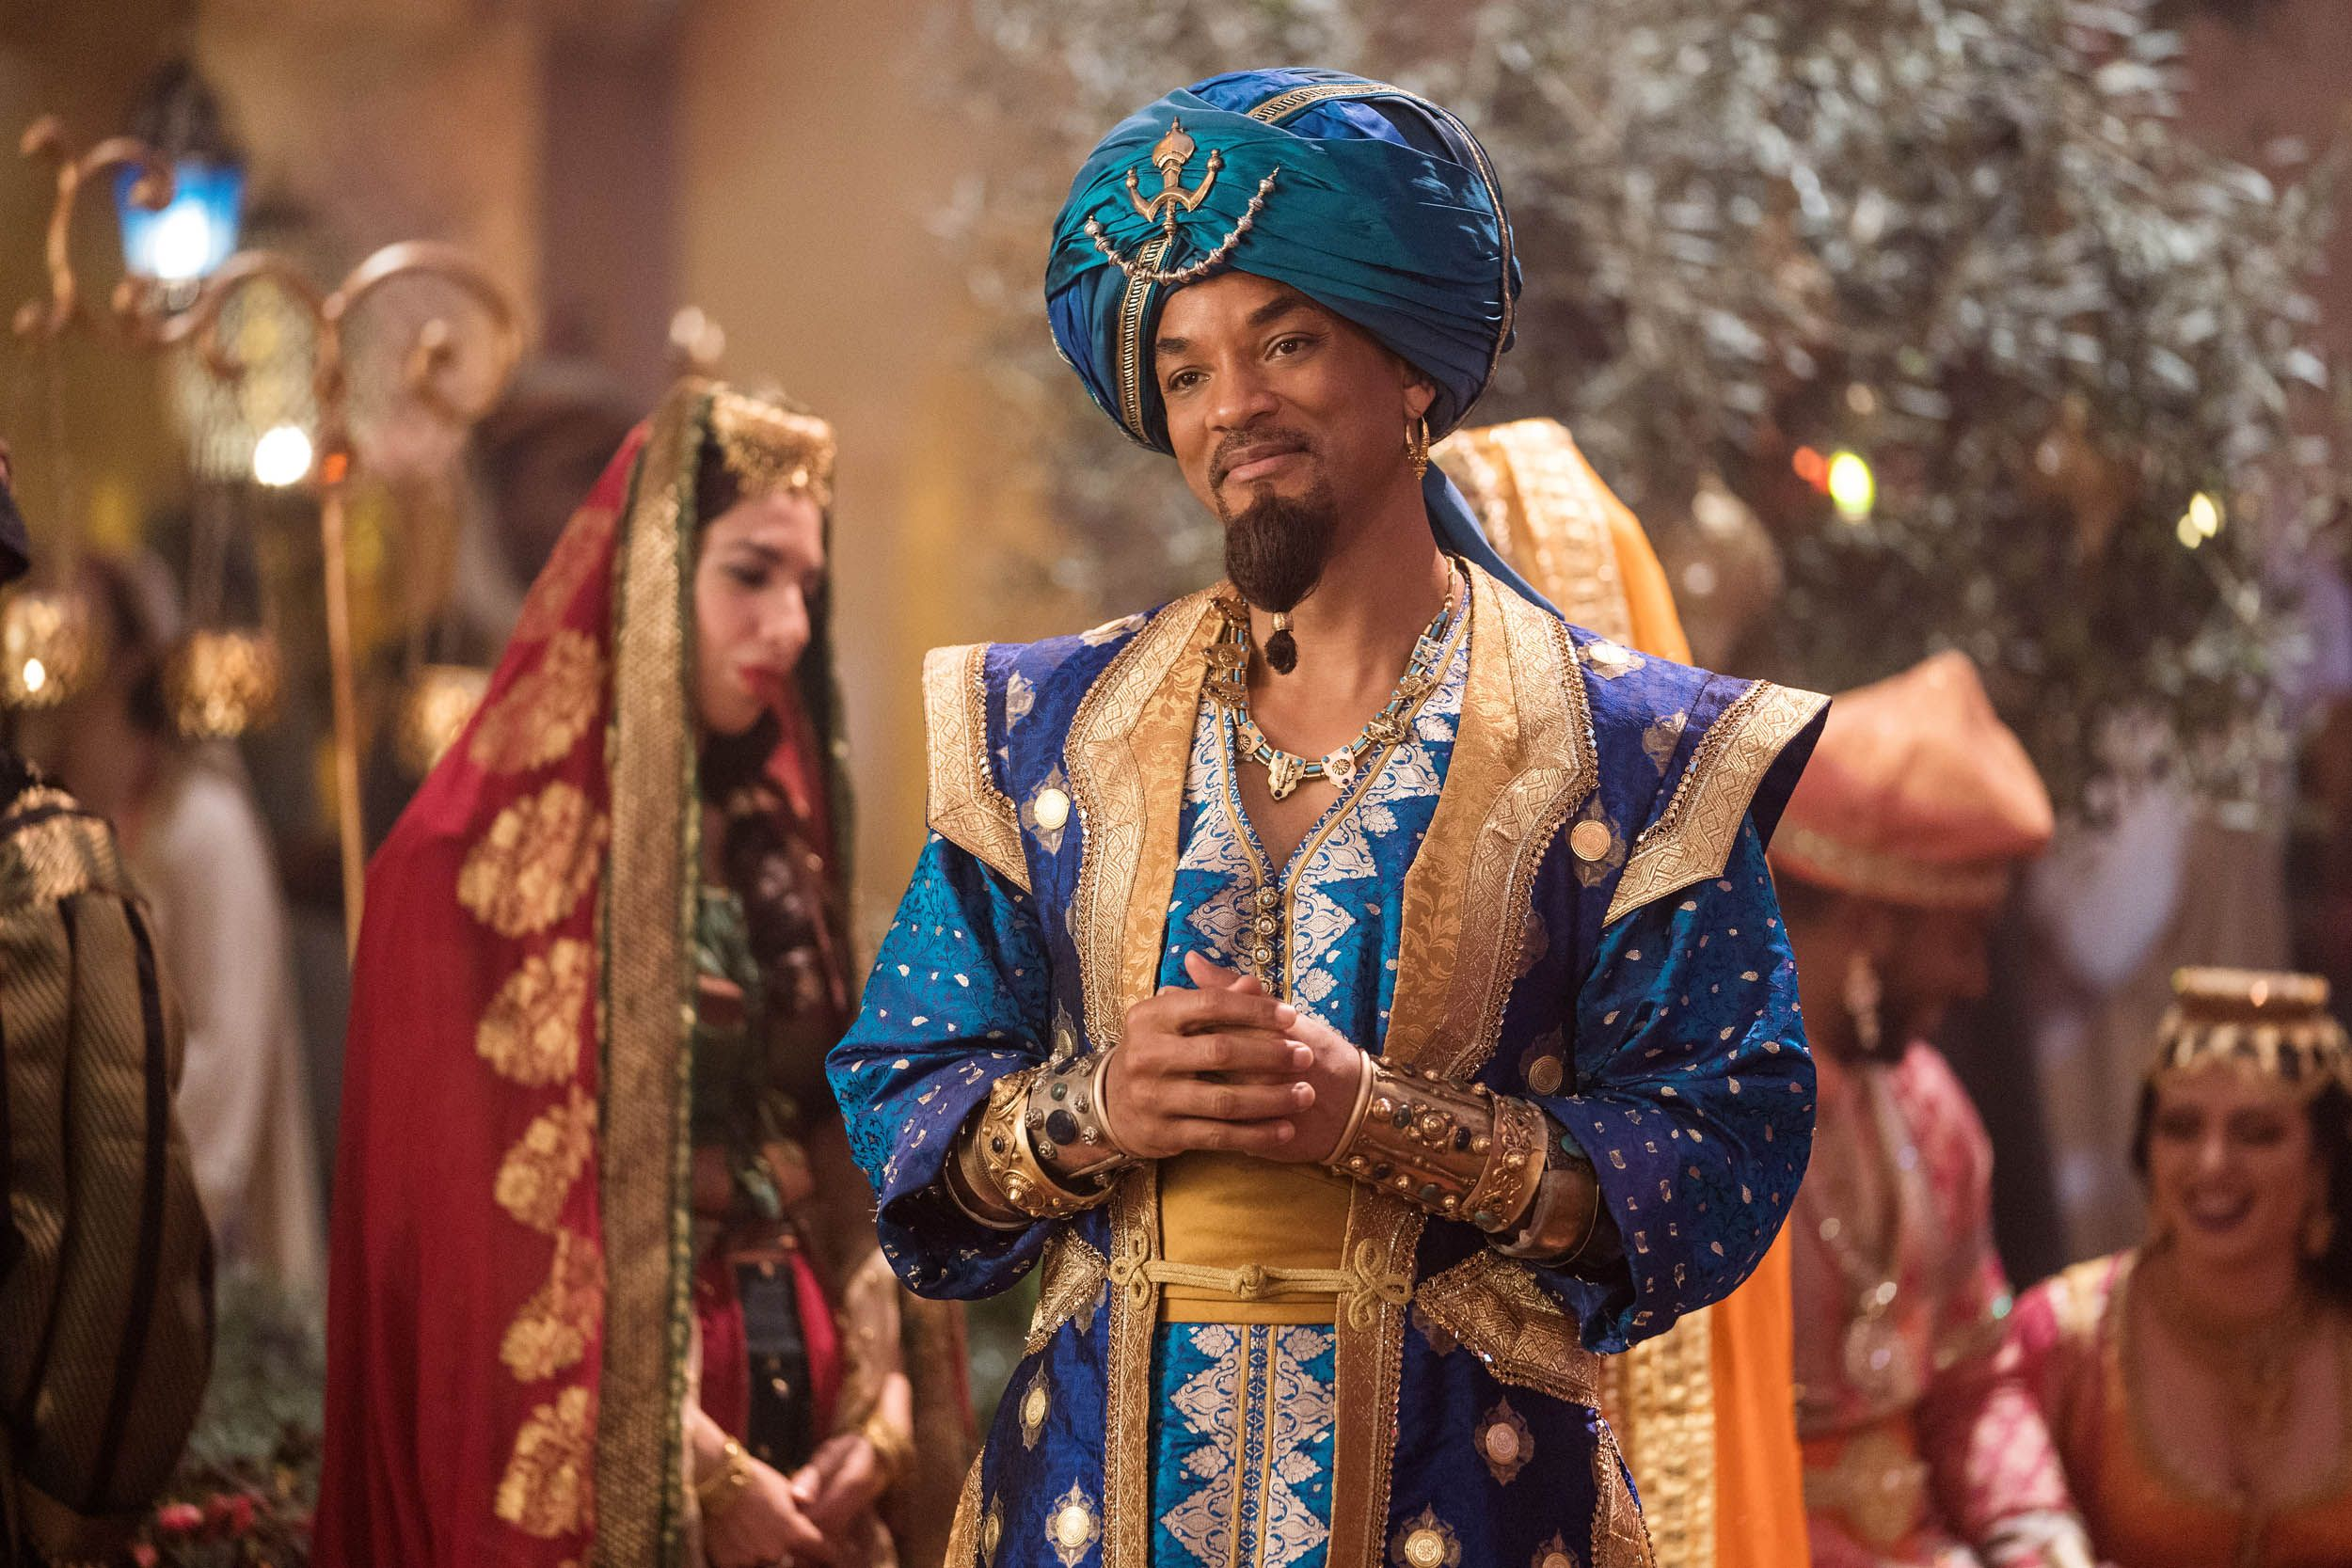 Guy Ritchie's Aladdin Is Unfortunately Not a Cocaine-Addled Crime Thriller